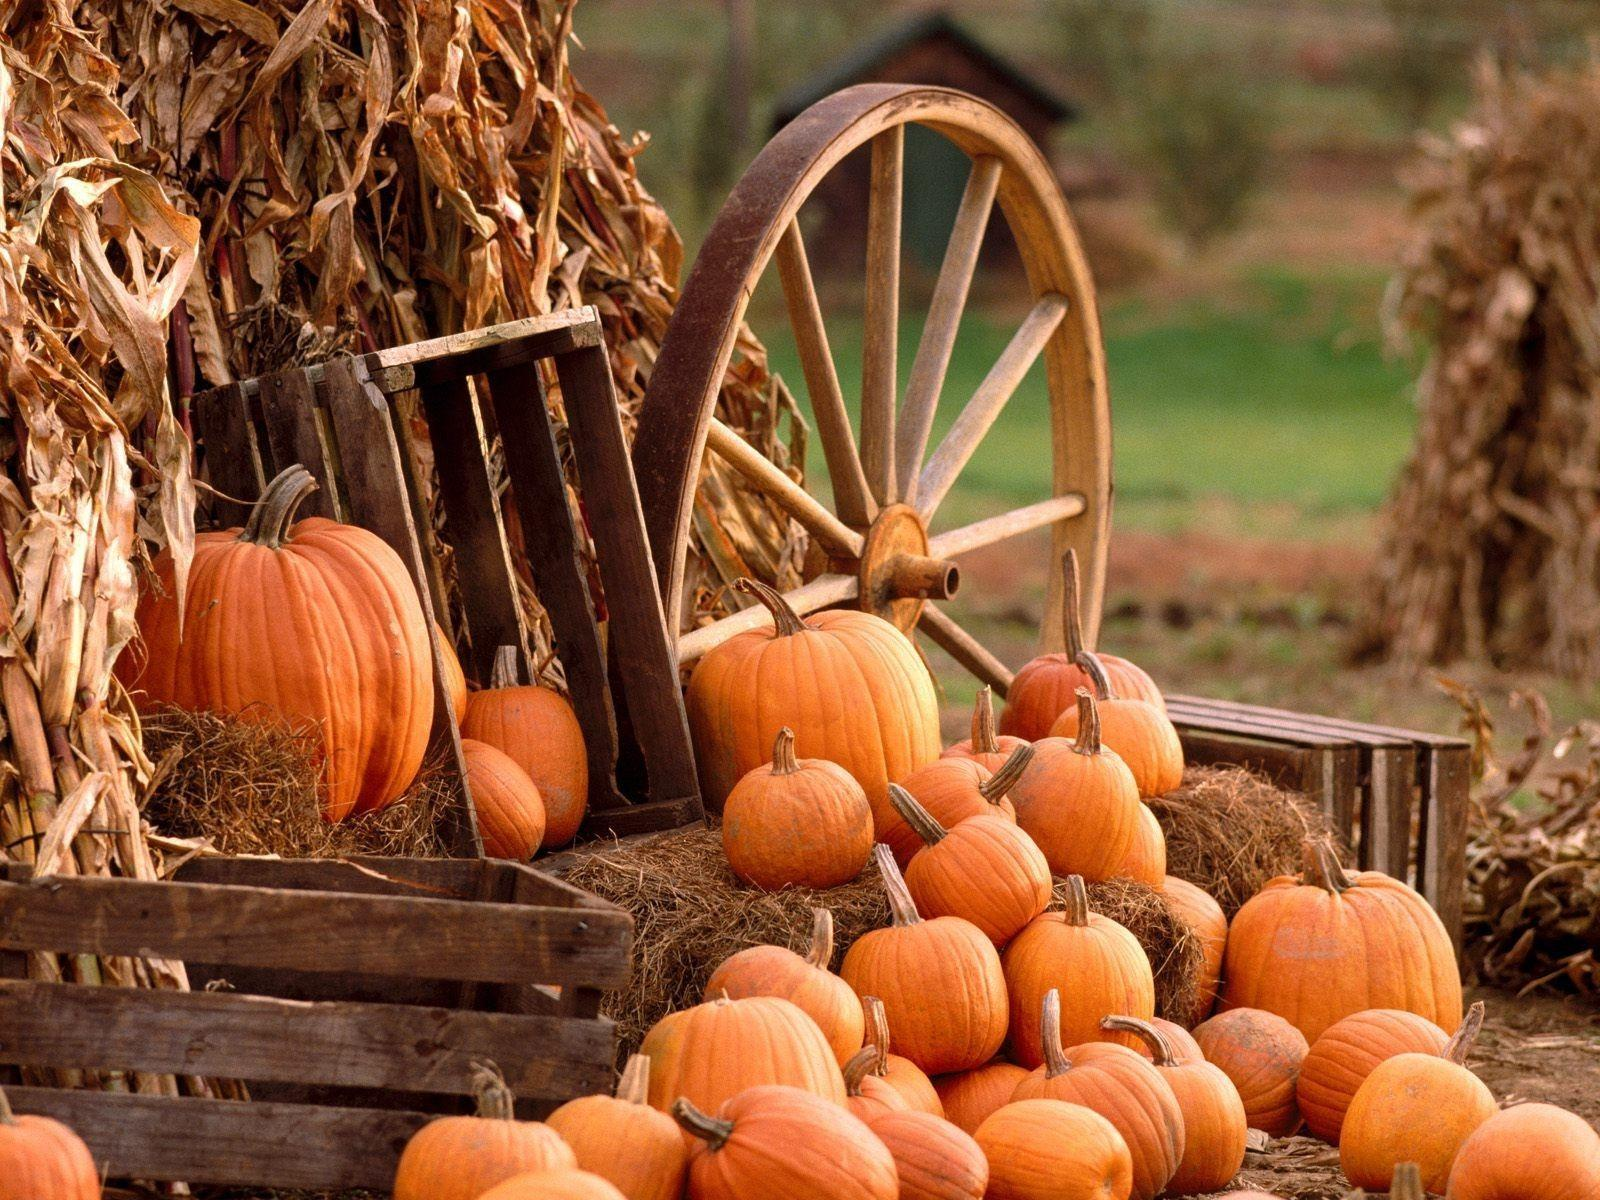 Fall Harvest Wallpapers 41189 HD Wallpapers